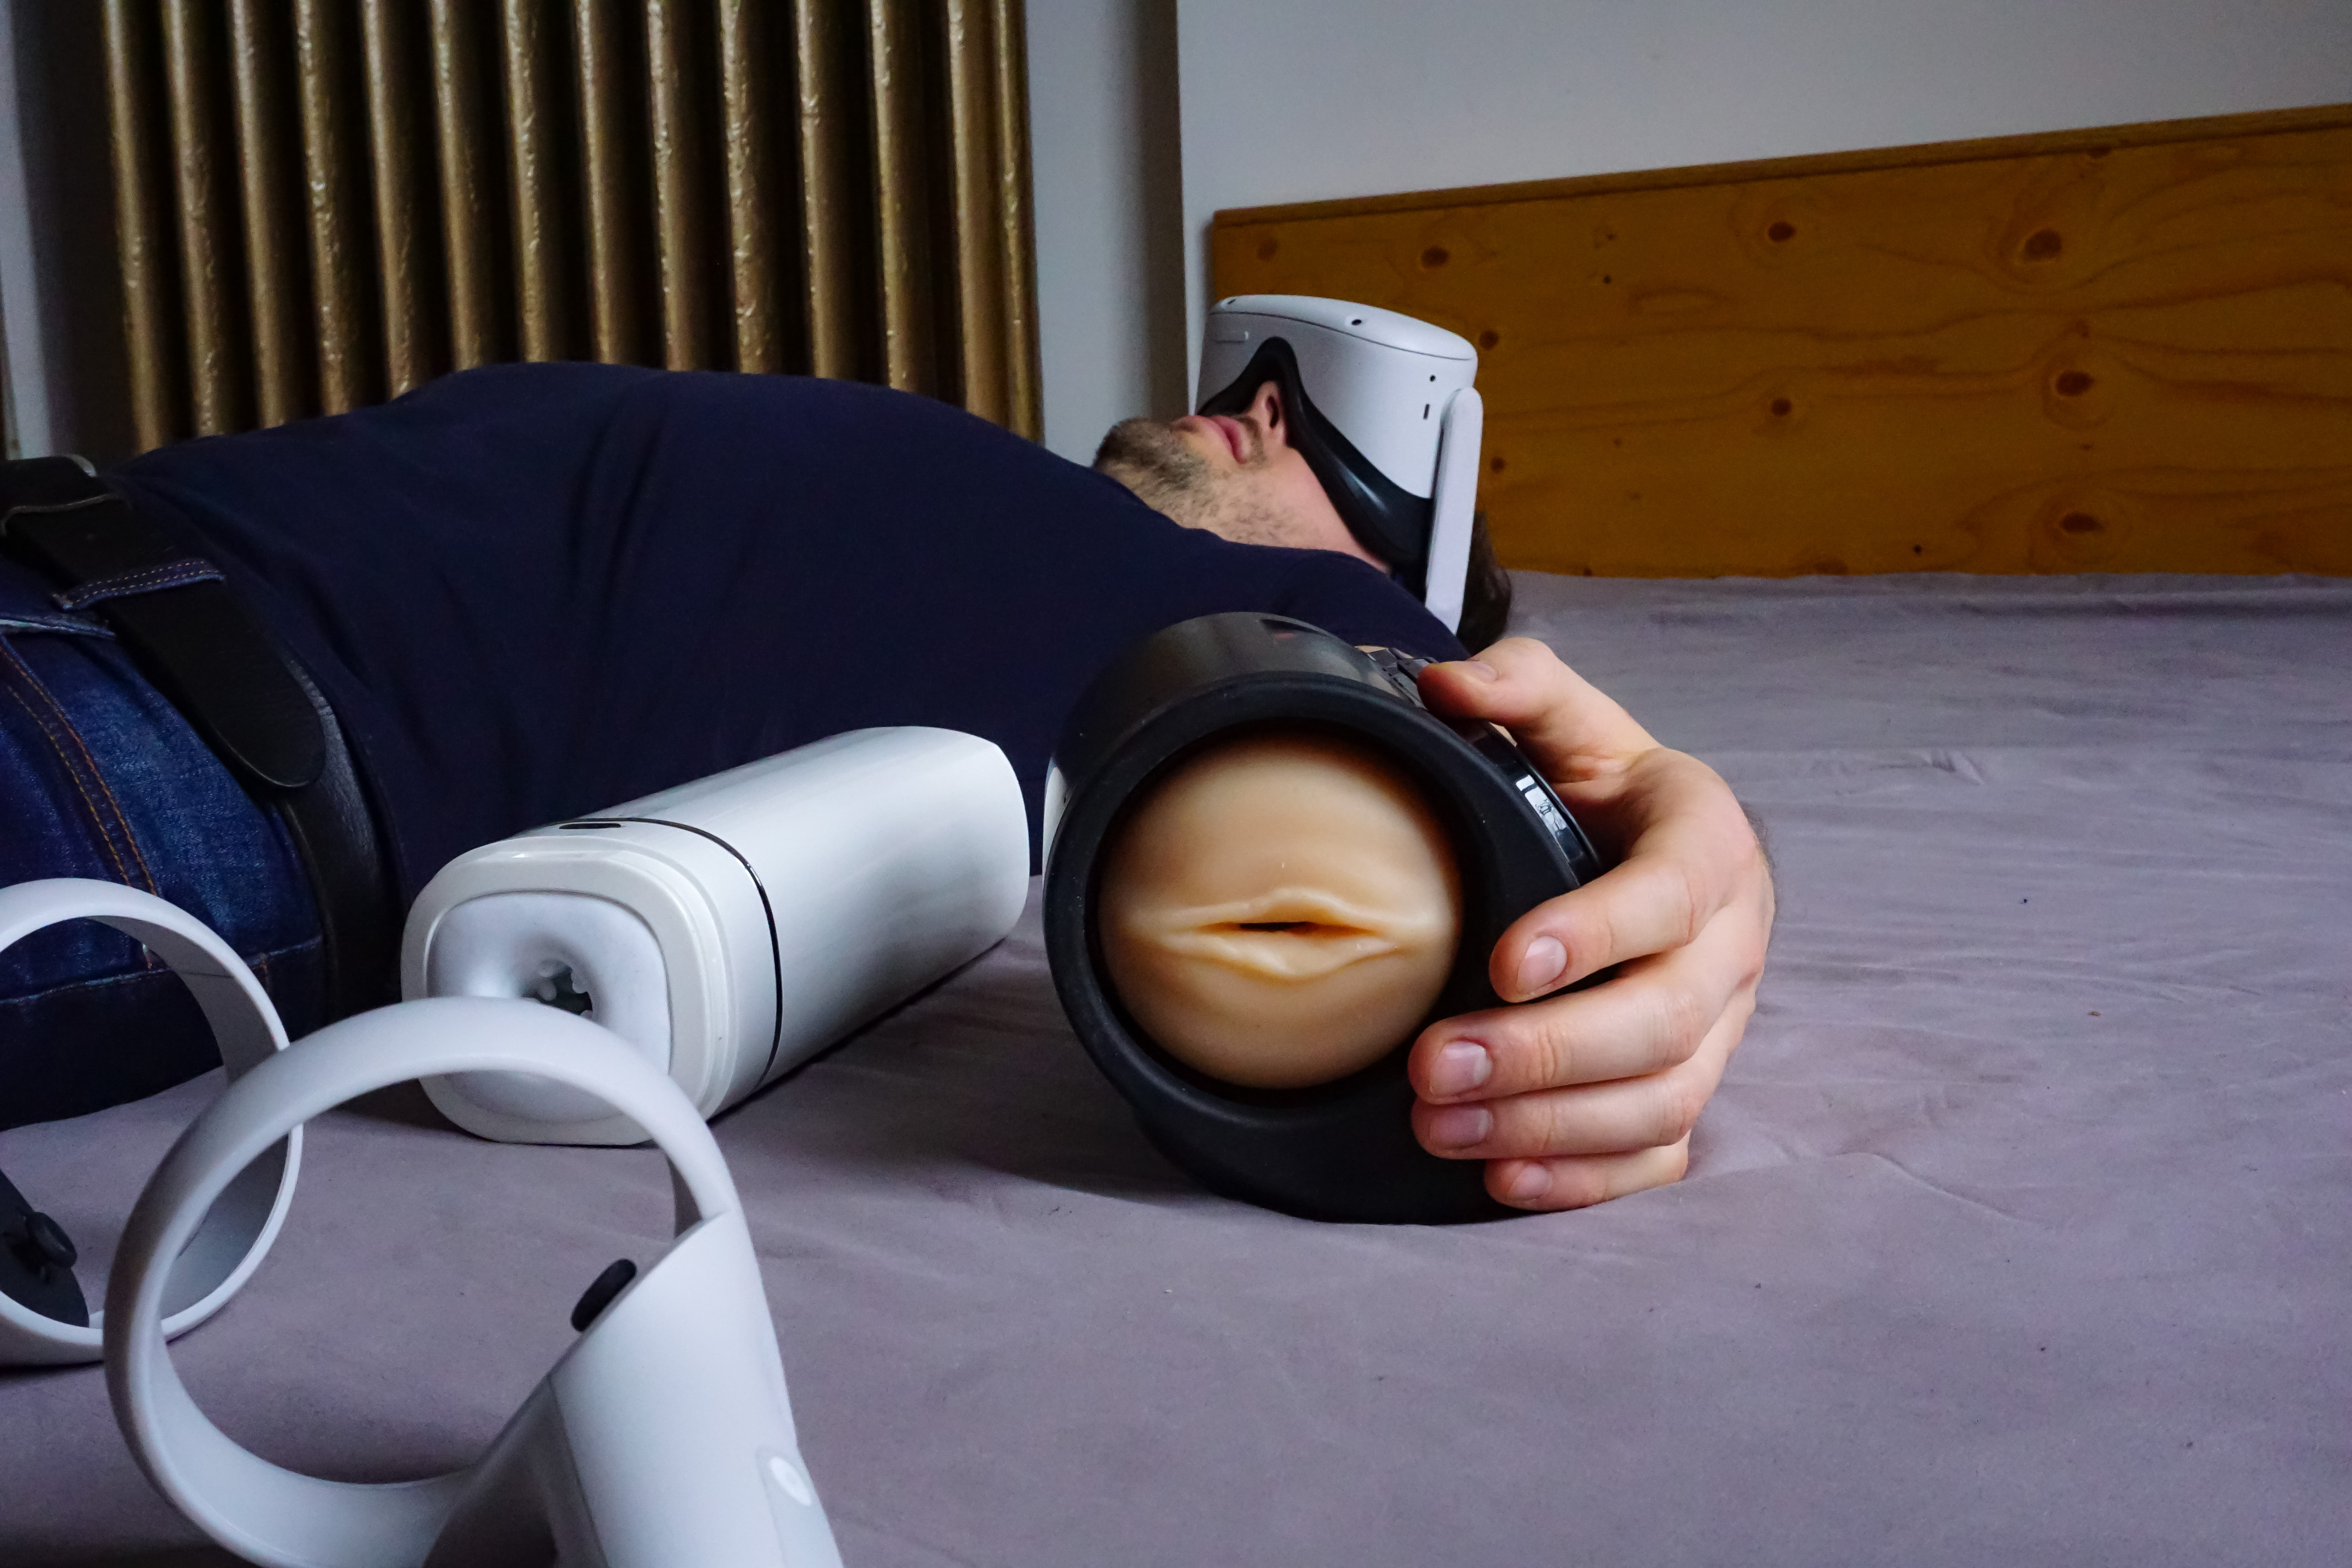 man wearing virtual reality headset and holding sex toy